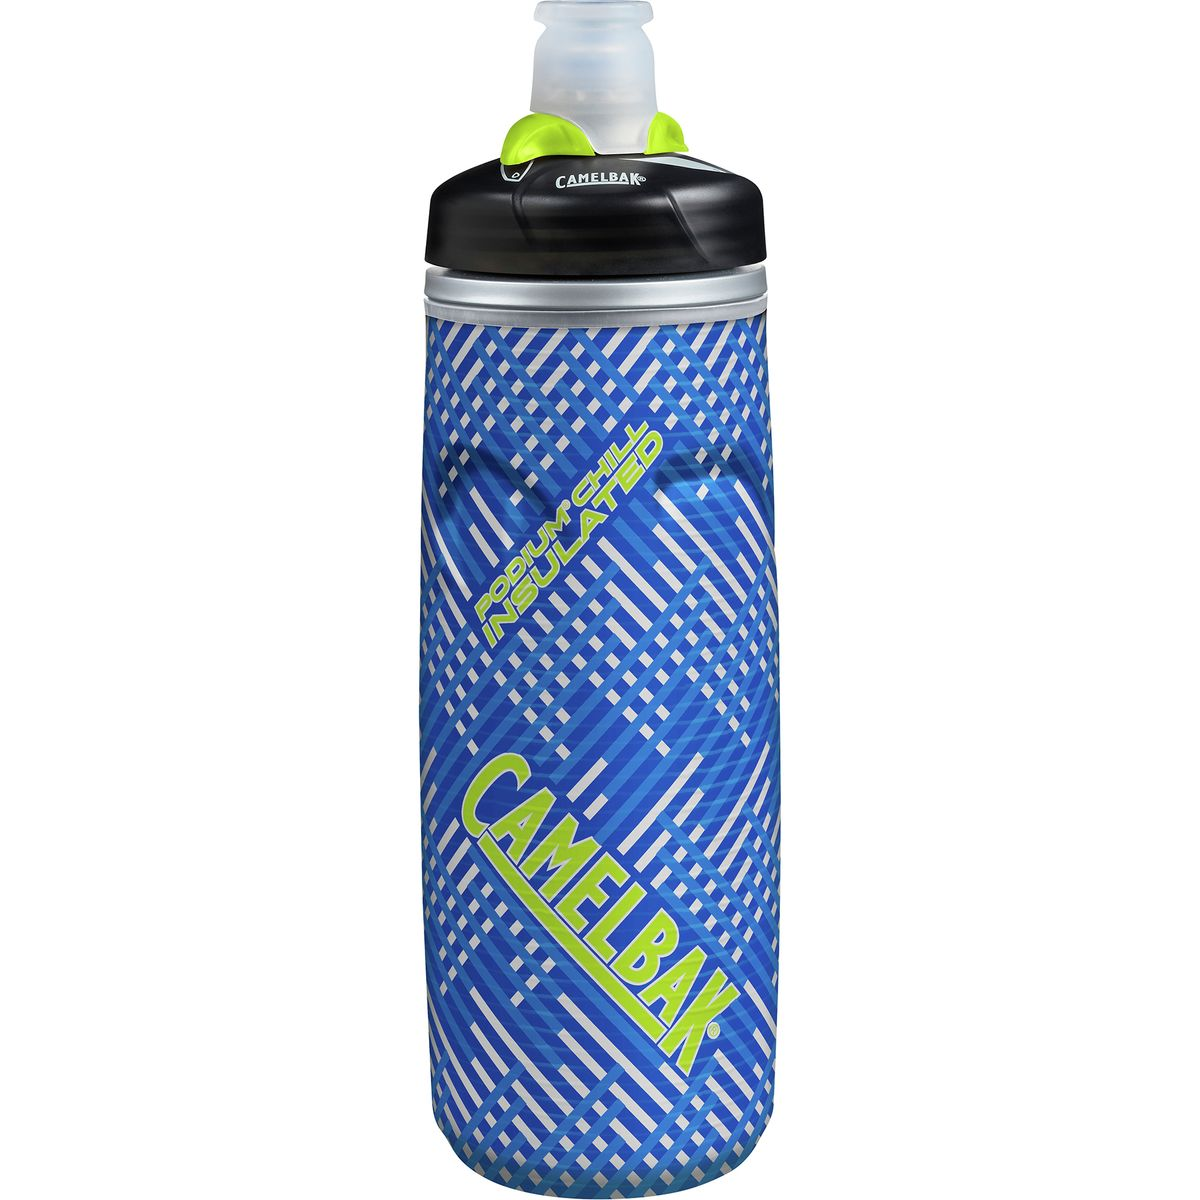 Camelbak Podium Chill Insulated Water Bottle 21oz